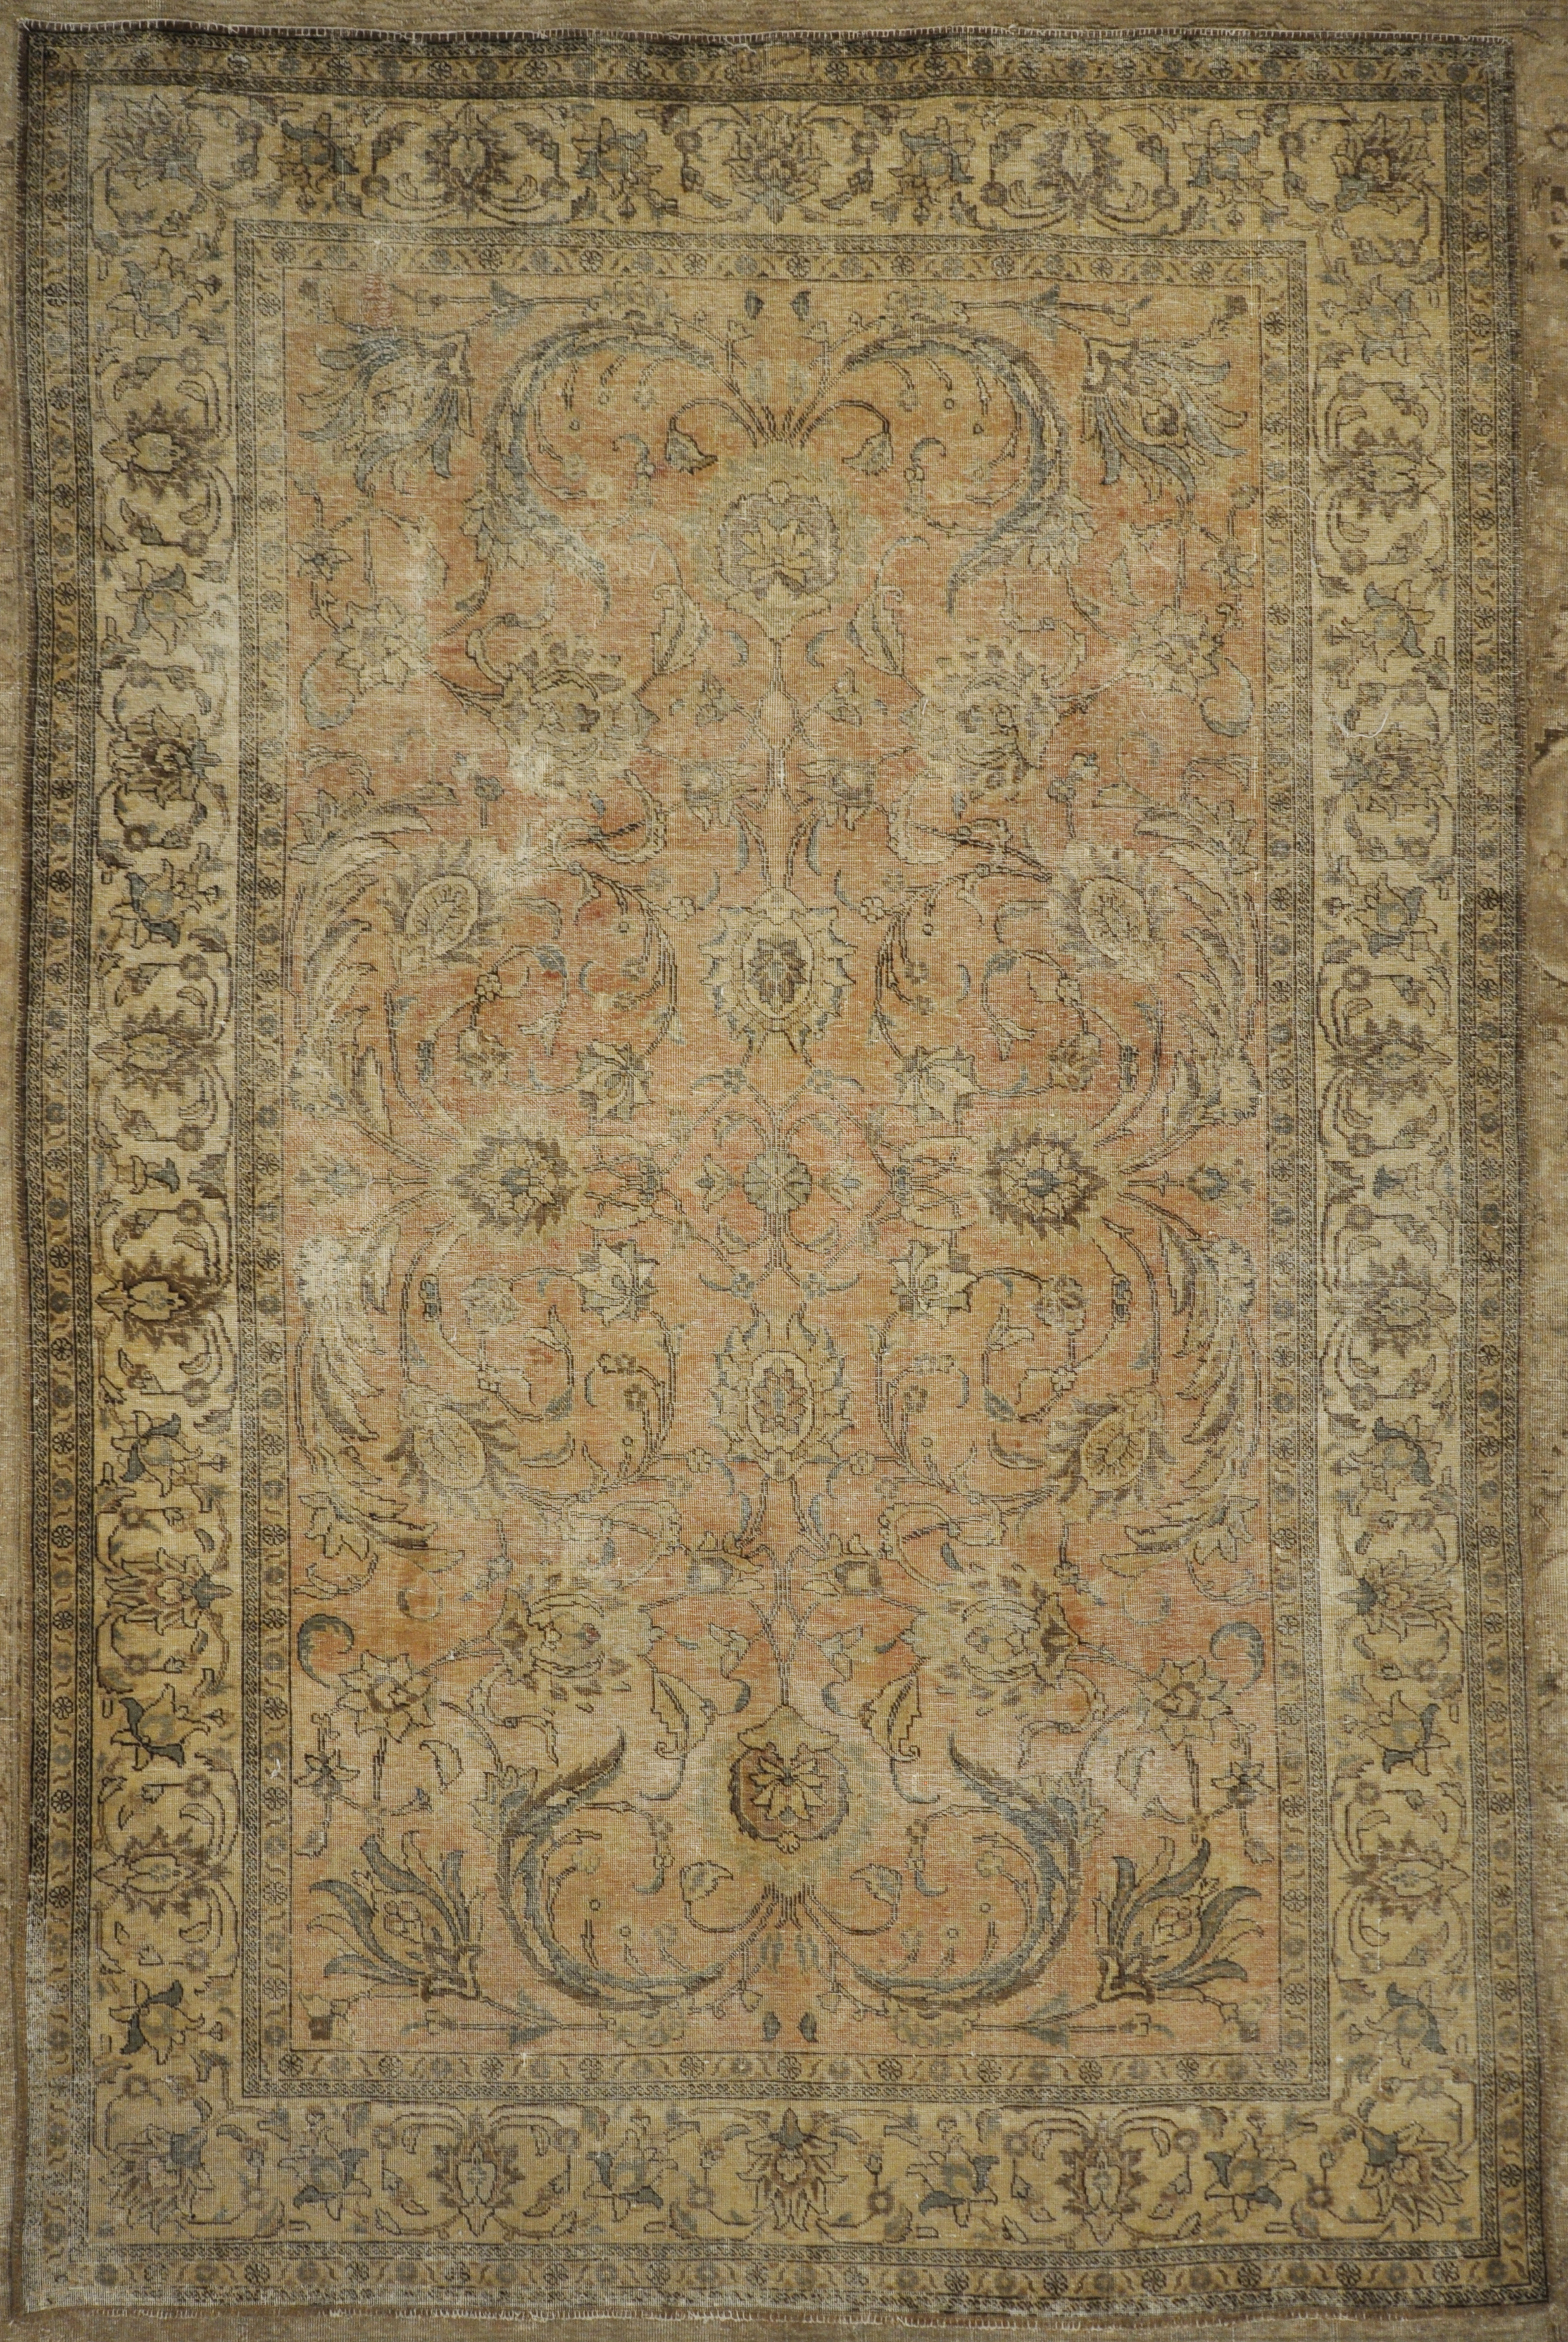 Antique Beige and Pink Persian Tabriz Genuine Authentic Intricate Woven Carpet Art Santa Barbara Design Center and Rugs and More